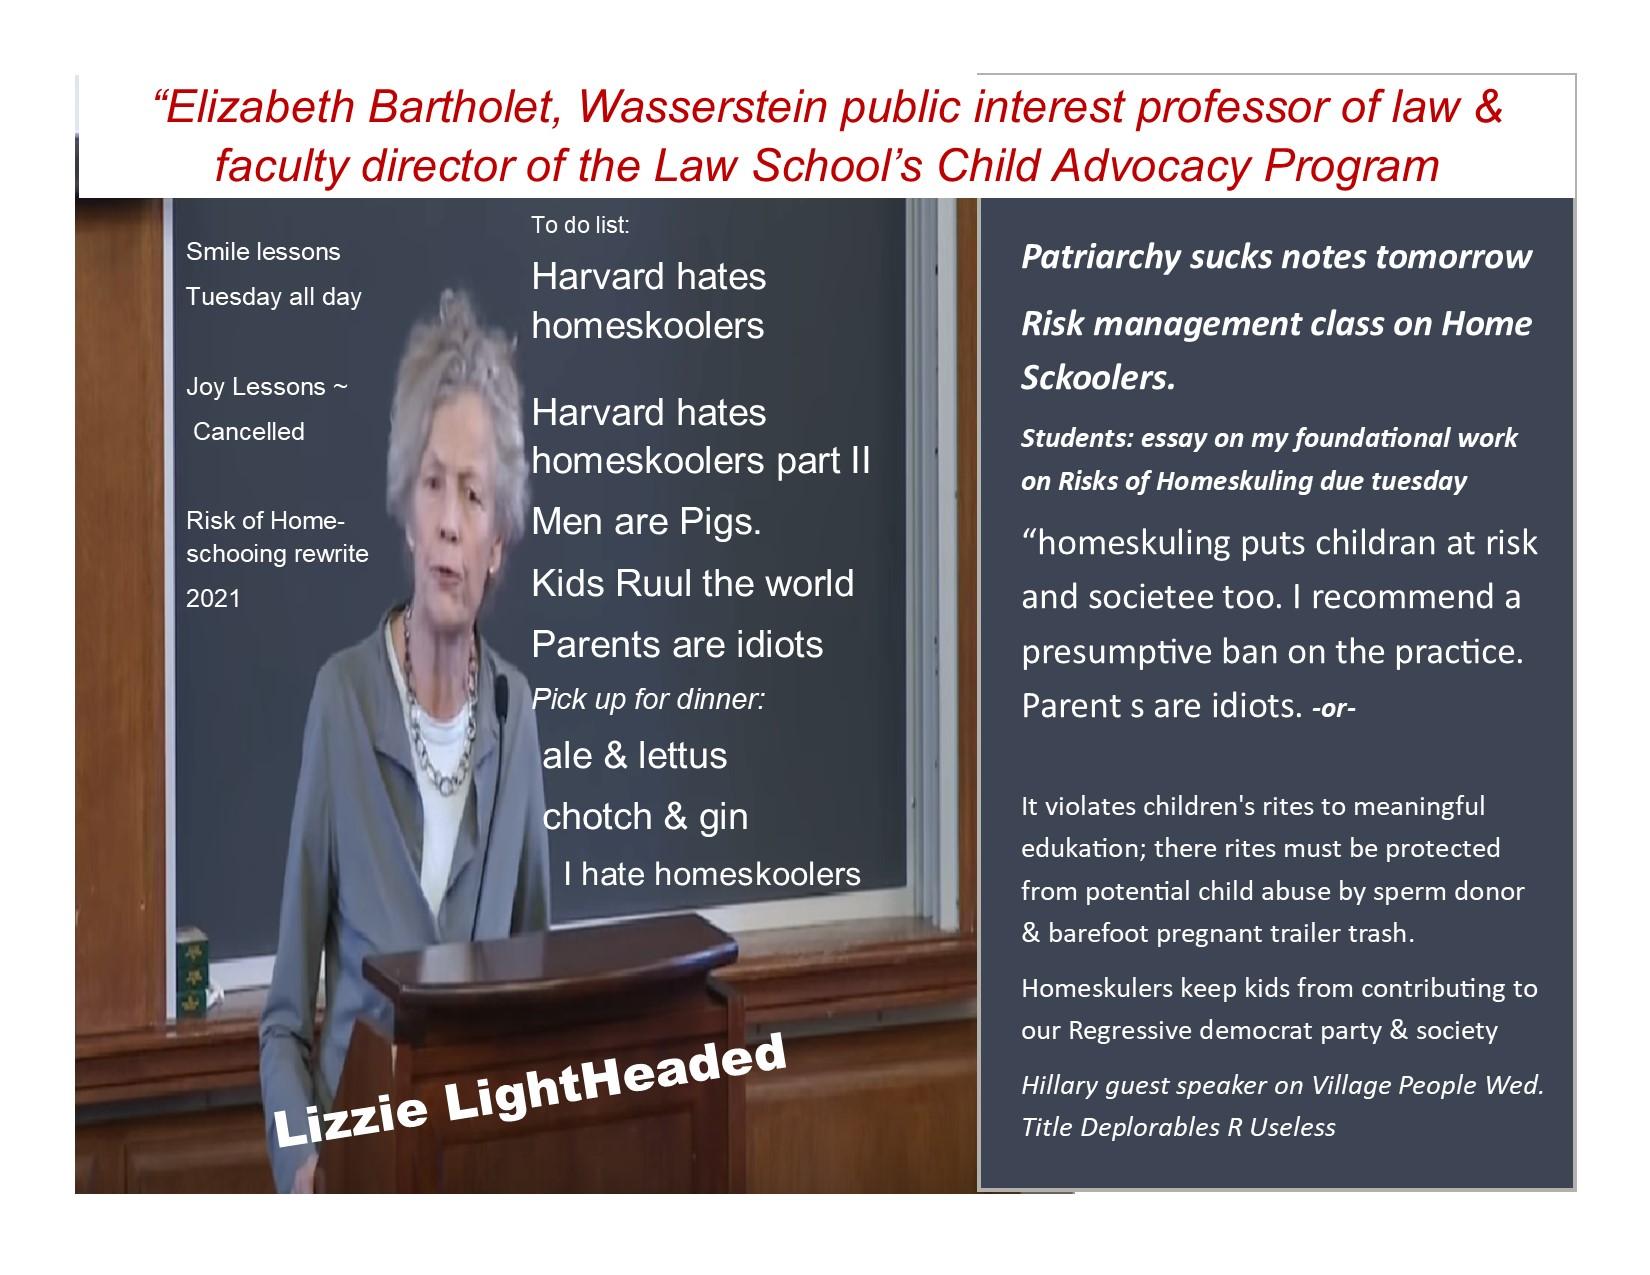 lizzie the lightheaded modified covid homeschooling